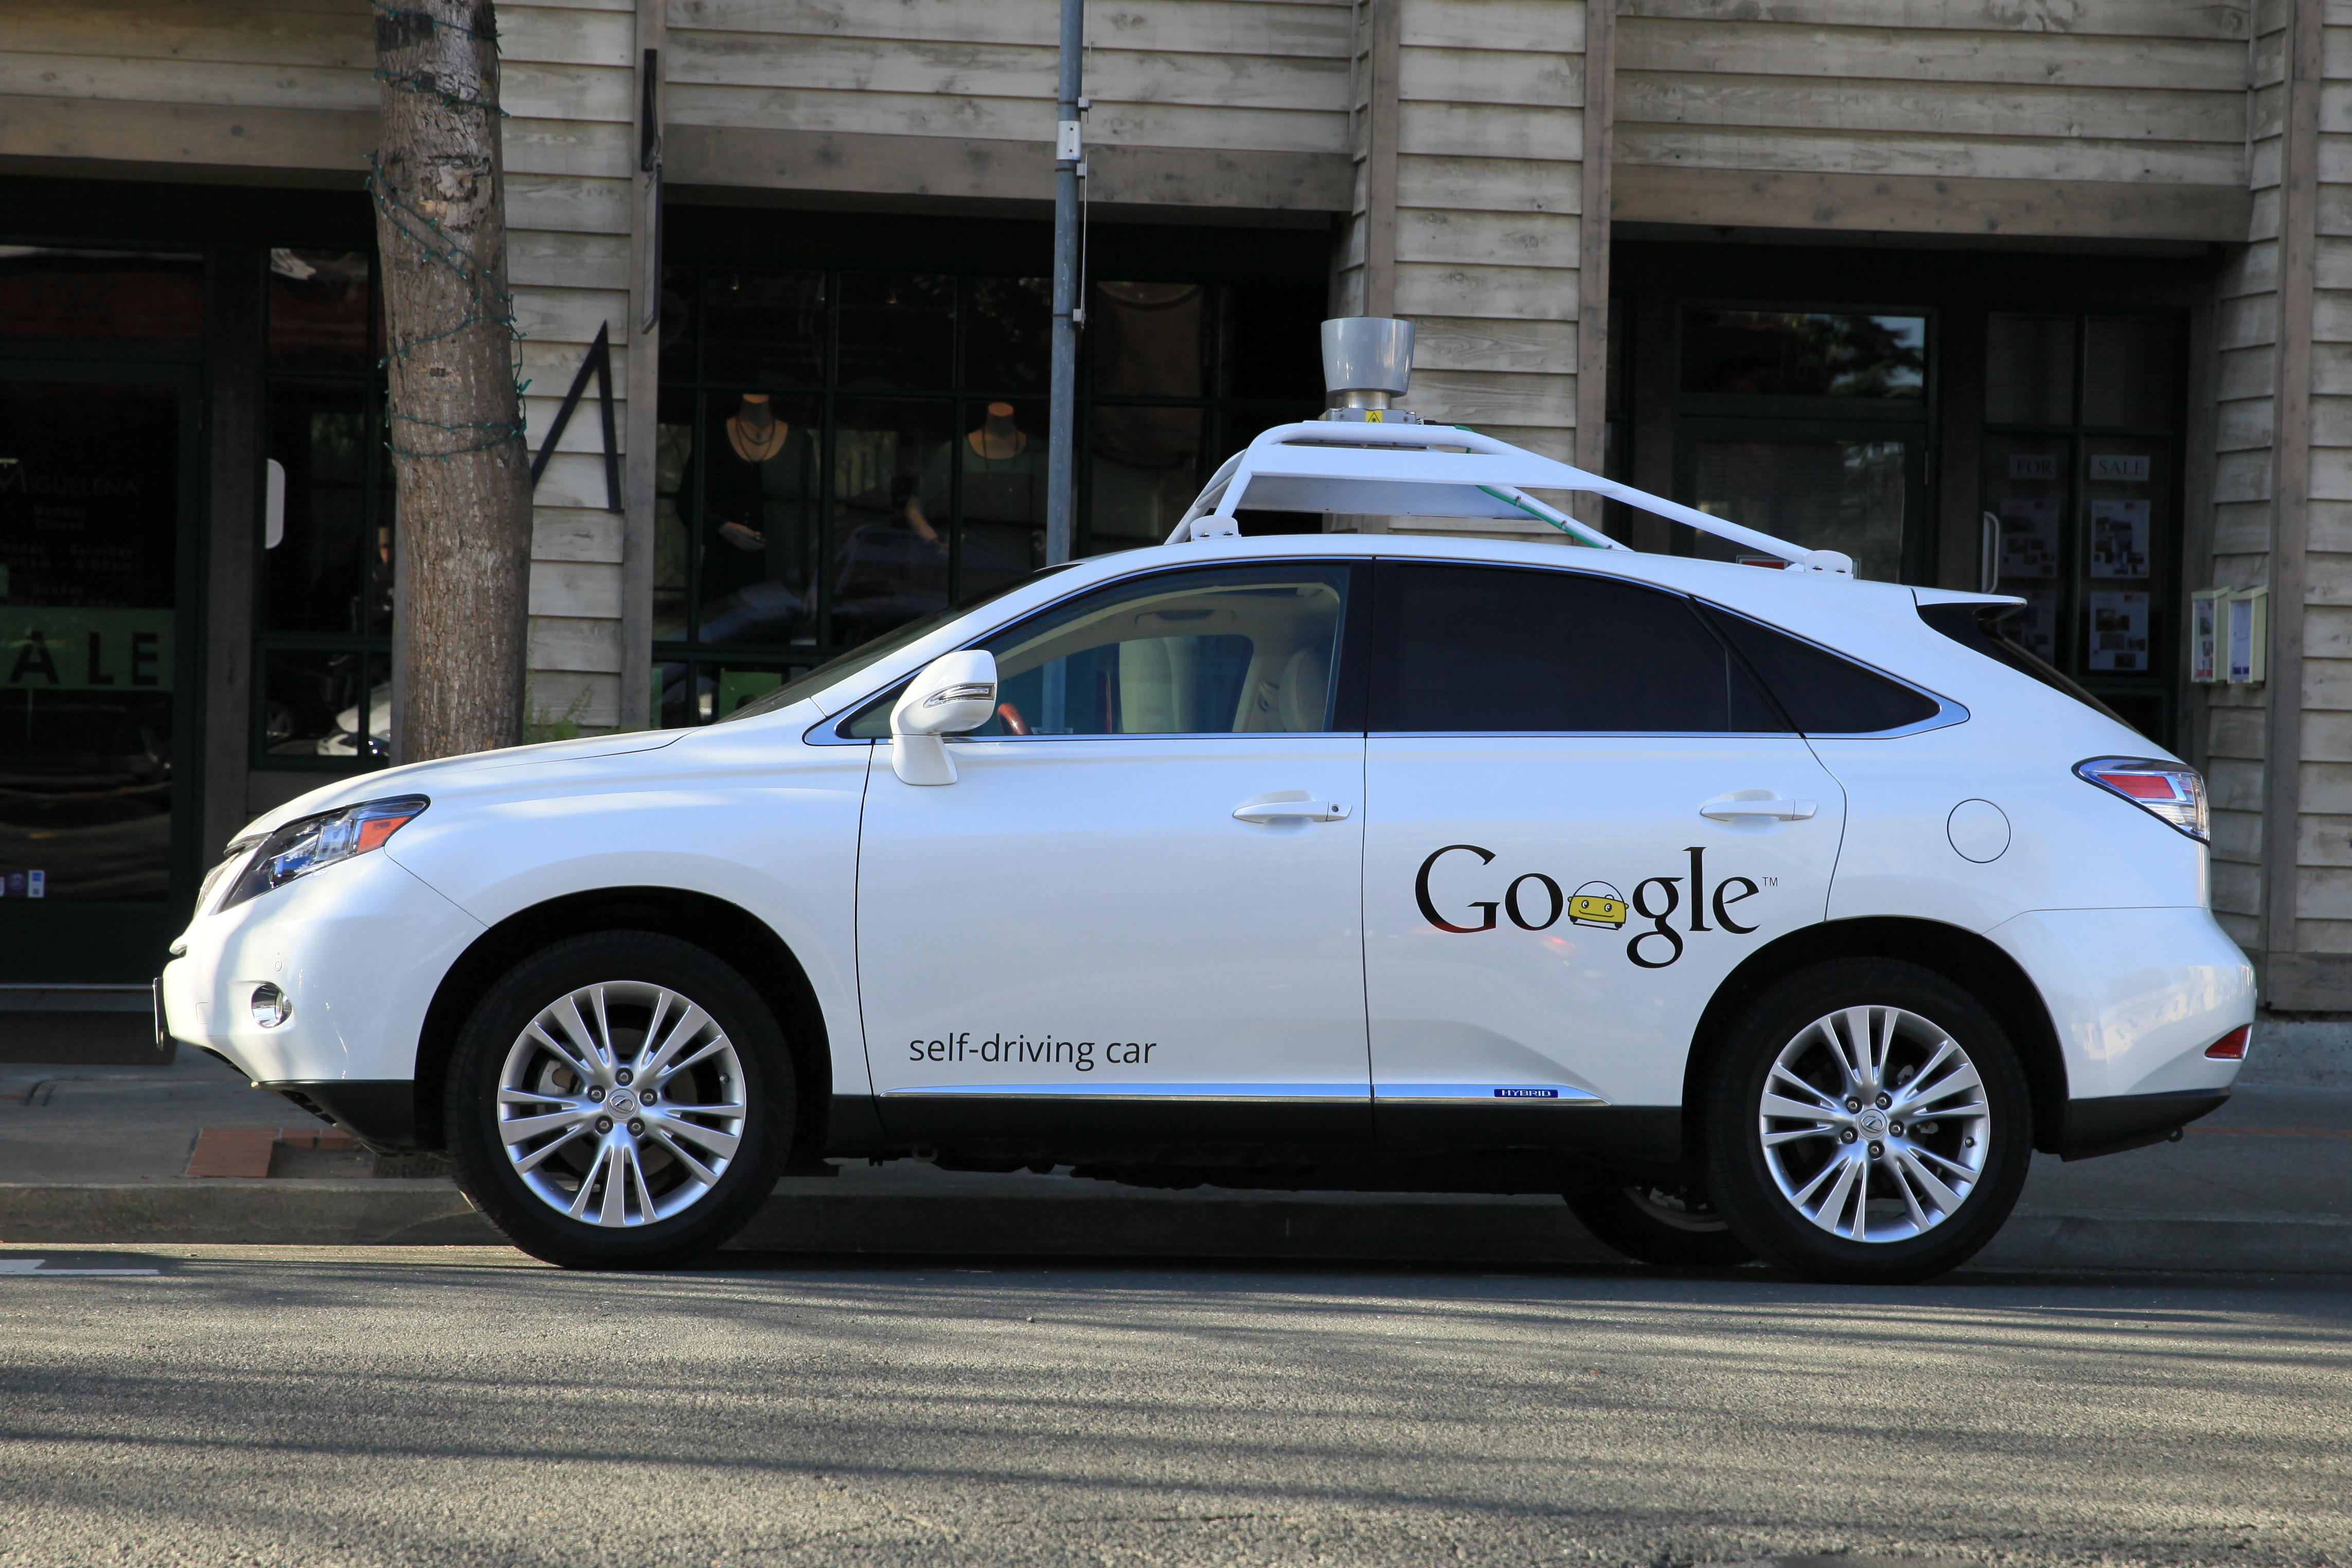 the google self driving car is ready to hit the road apex tribune world latest breaking news. Black Bedroom Furniture Sets. Home Design Ideas